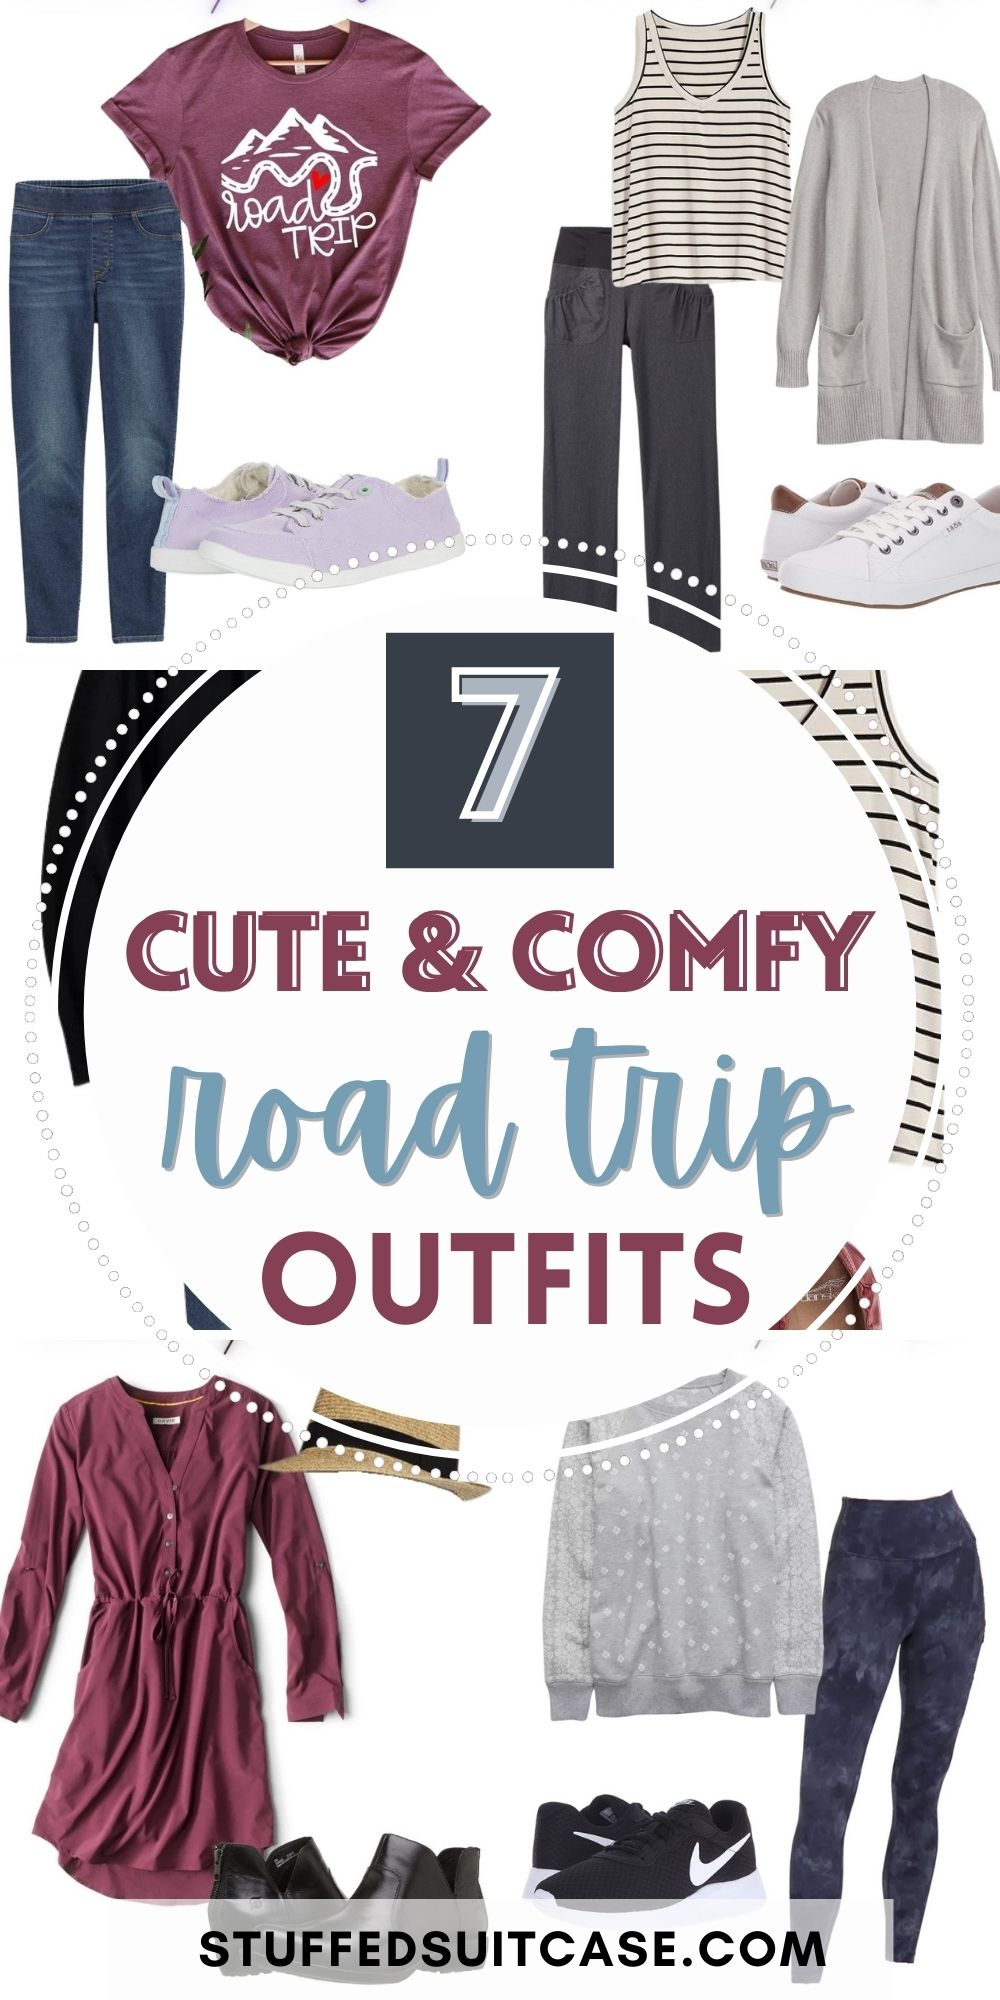 collage of road trip outfits with text